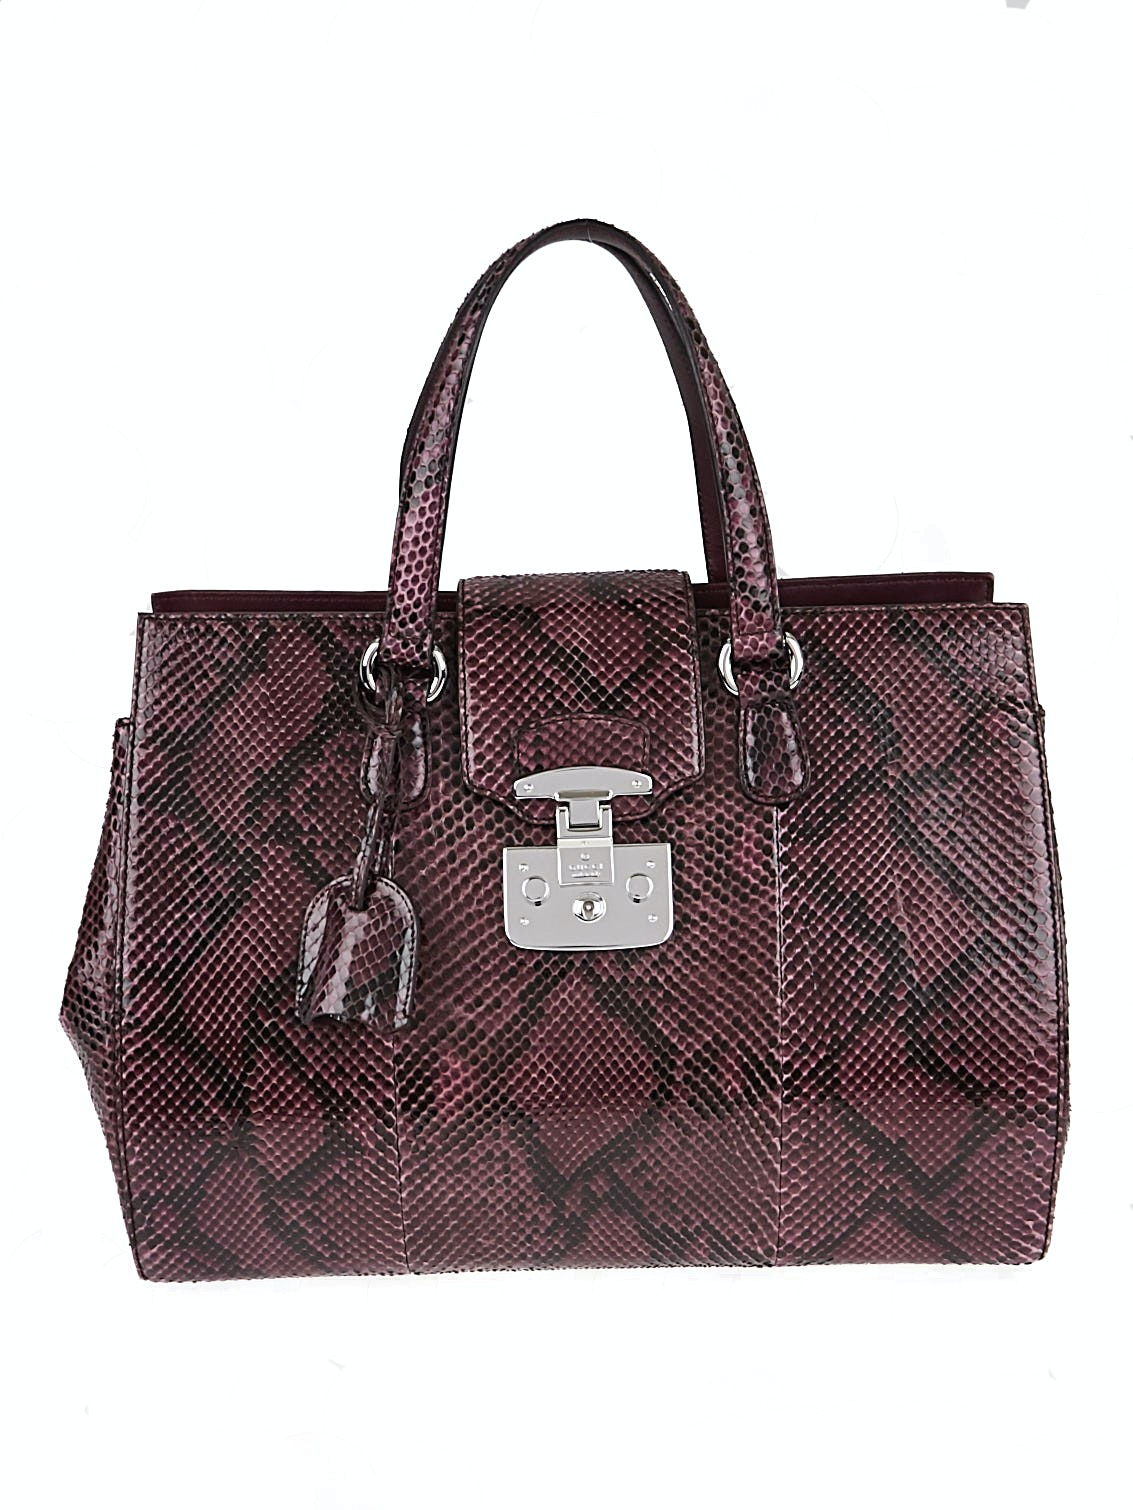 Gucci Lady Lock Top Handle Large Wine